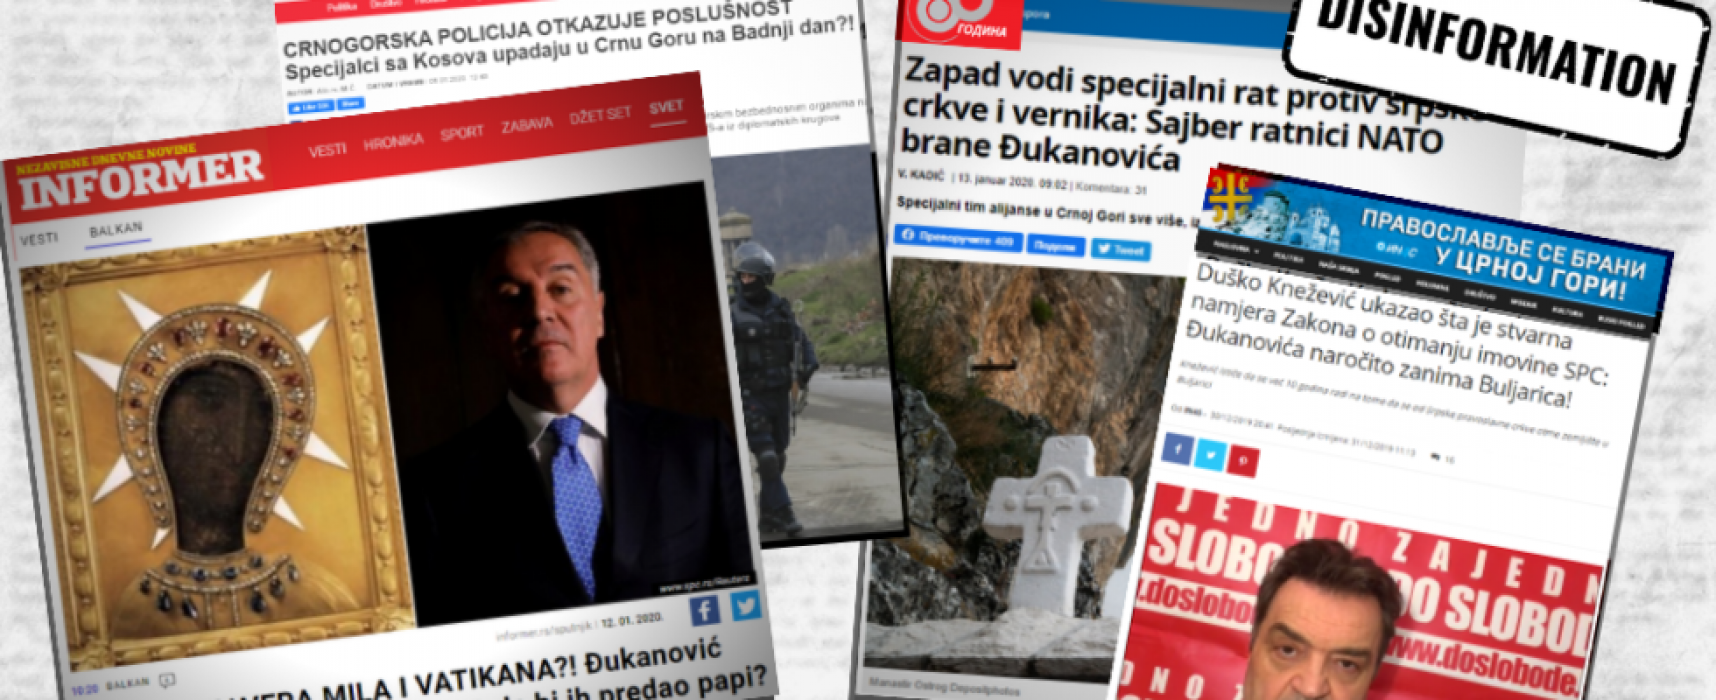 Disinformation sharpened tensions between Serbia and Montenegro